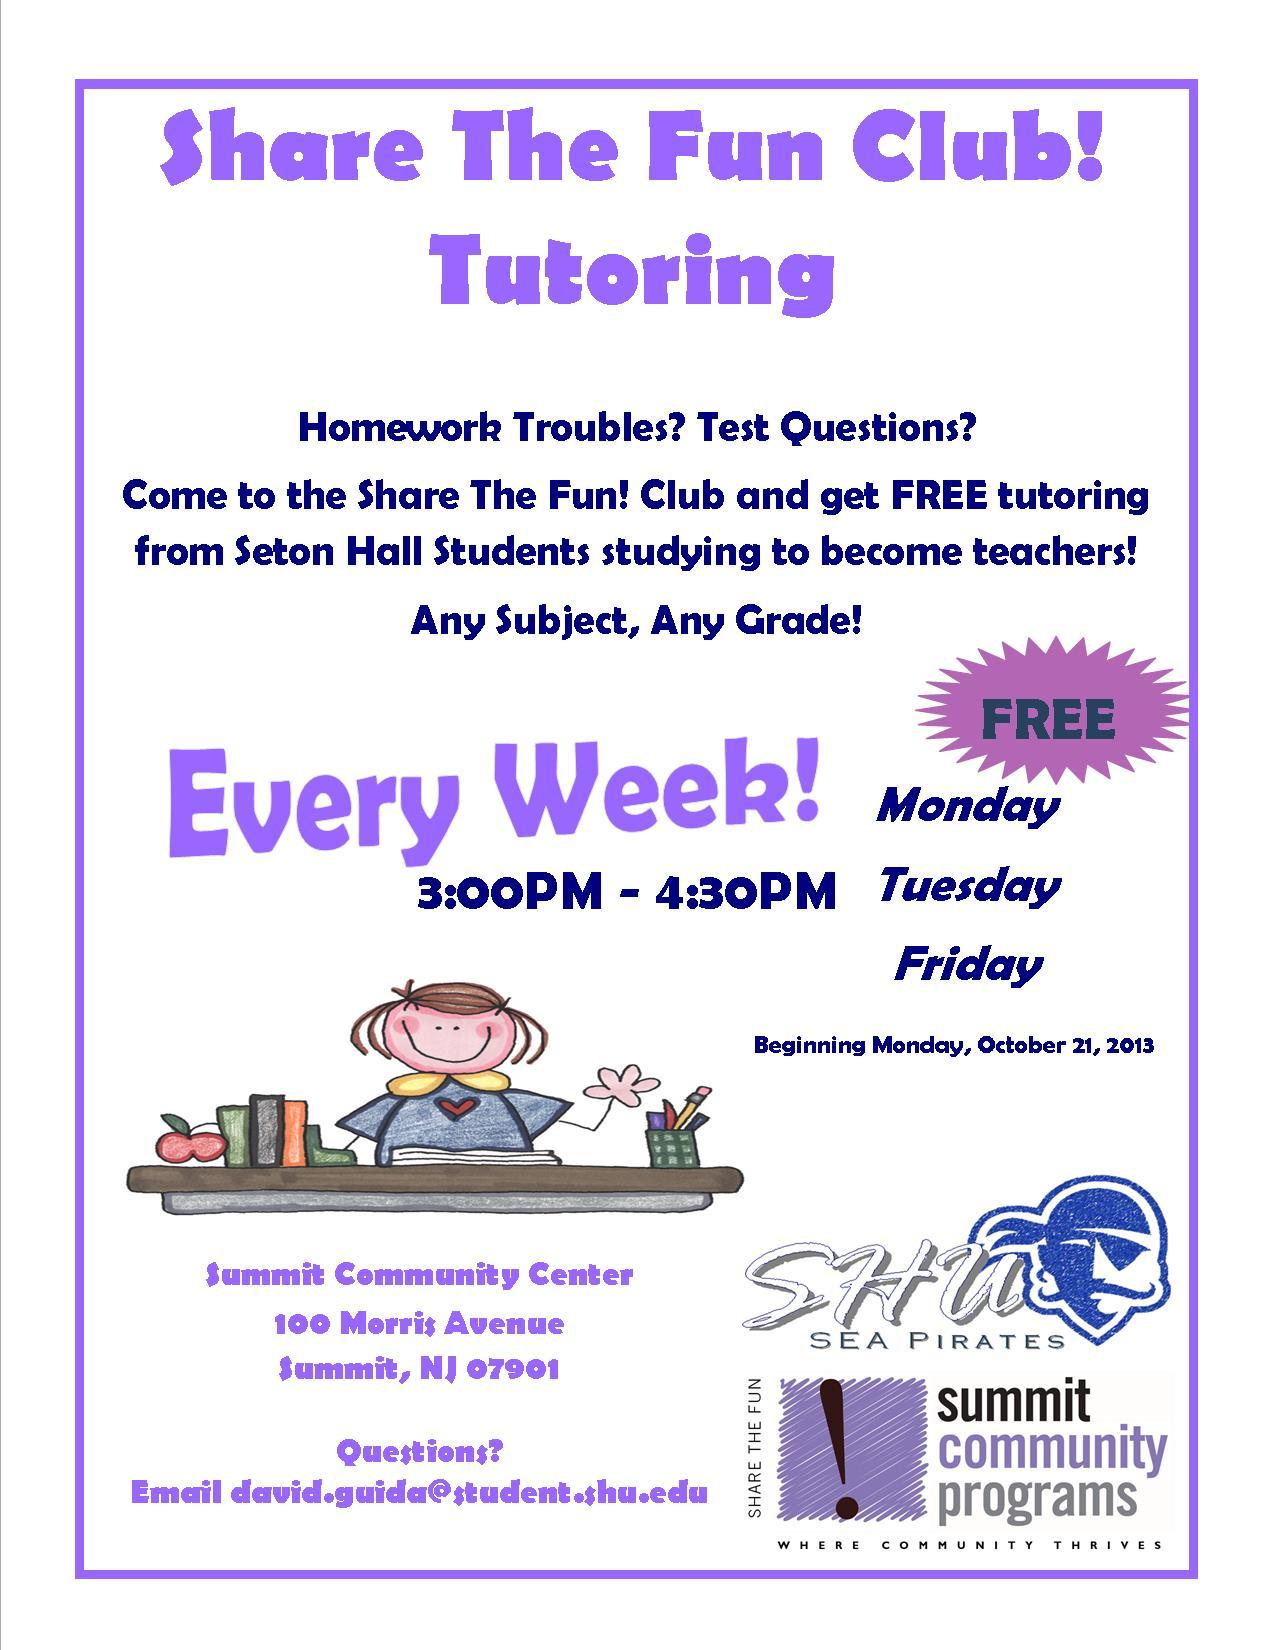 after school fun tutoring offered through summit dcp news content options